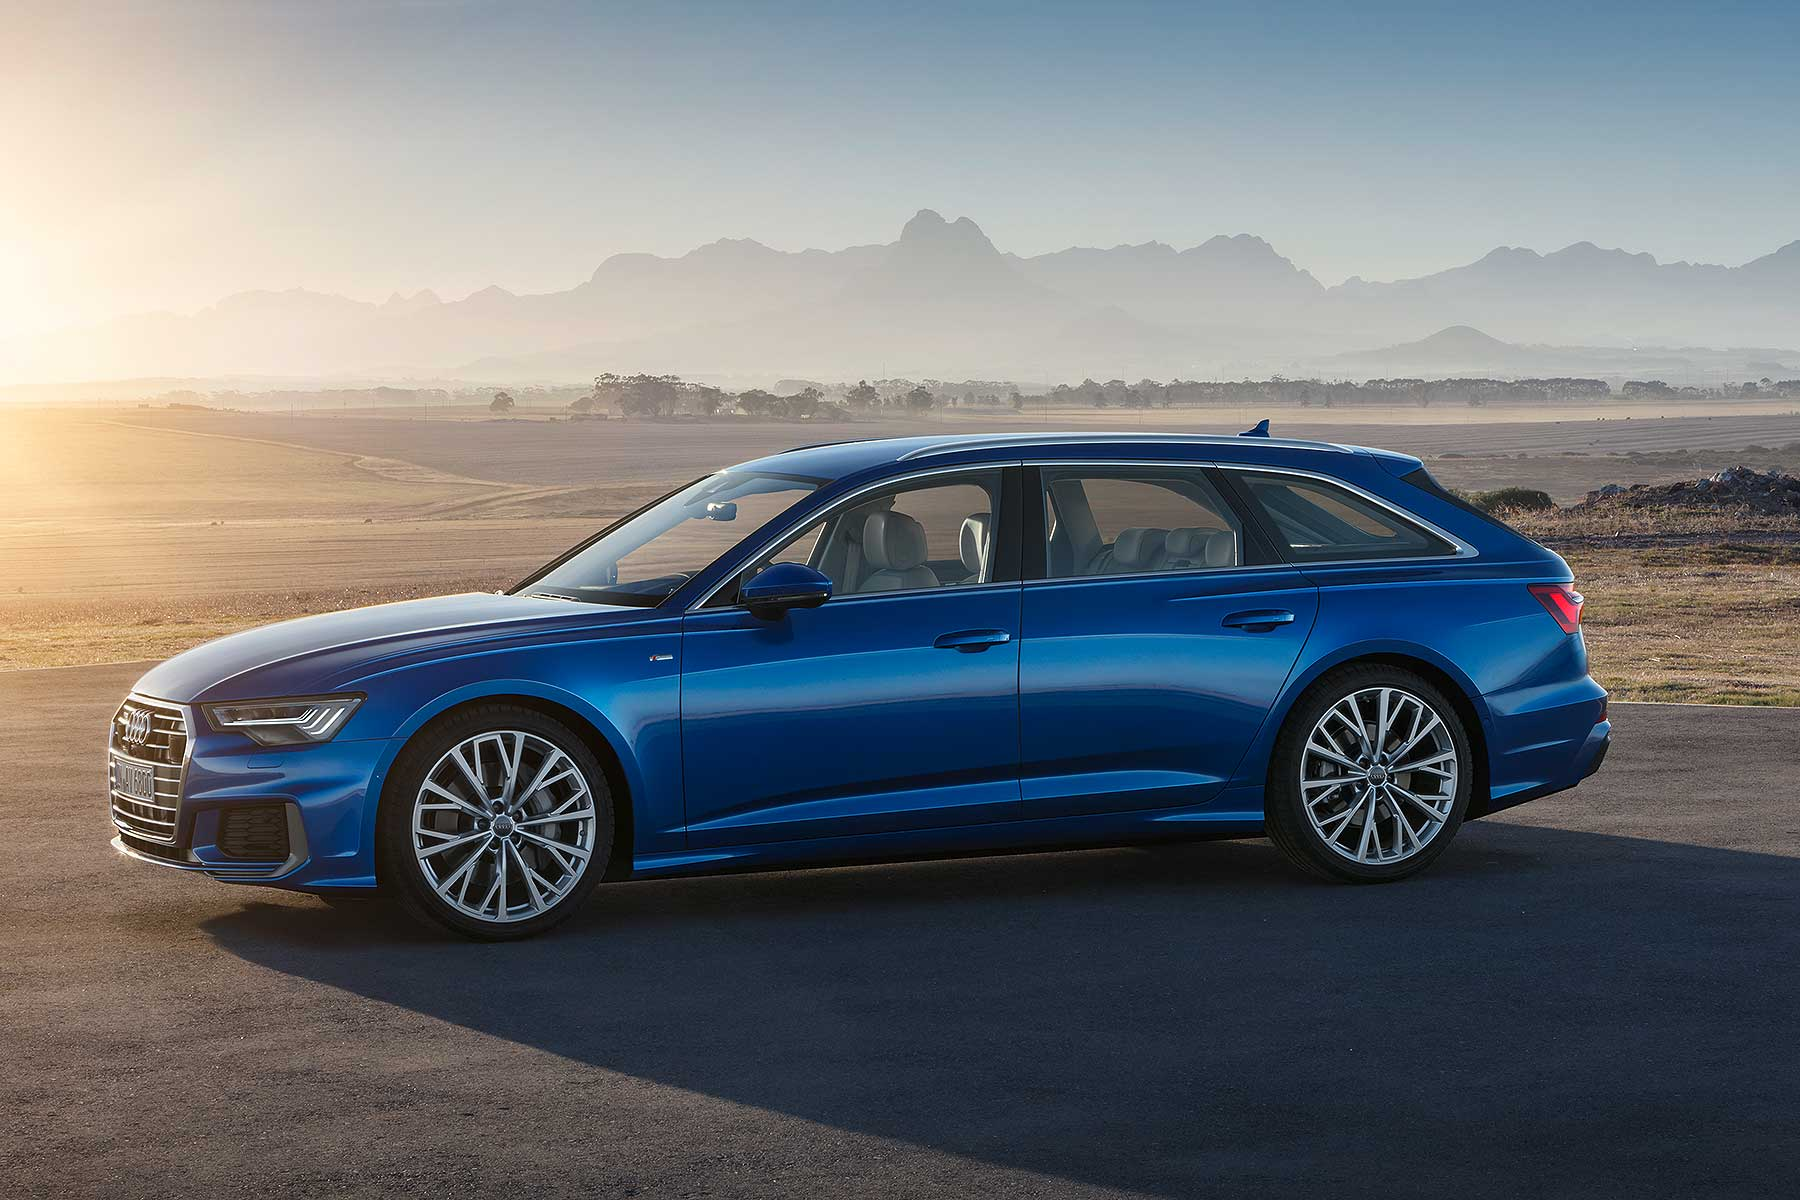 2018 audi a6 gets a cheaper new diesel and a sub 40k price tag motoring research. Black Bedroom Furniture Sets. Home Design Ideas